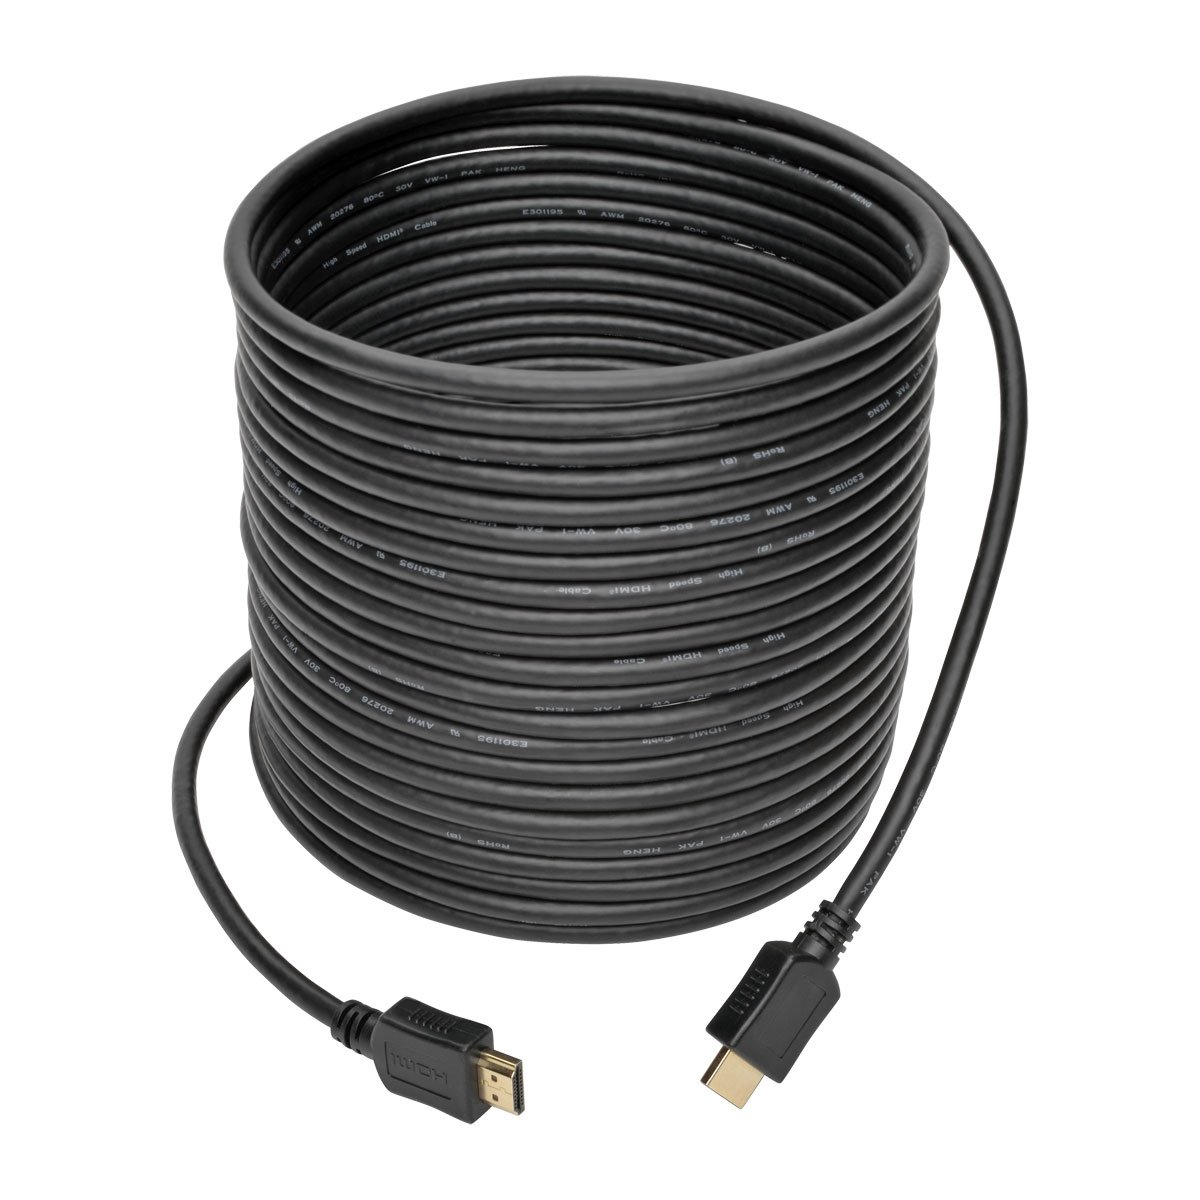 Tripp Lite Cable HDMI de Alta Velocidad, con Video Digital y Audio, Ultra HD 4K x 2K (M/M), Negro, 12.2 m [40 pies]: Amazon.es: Electrónica